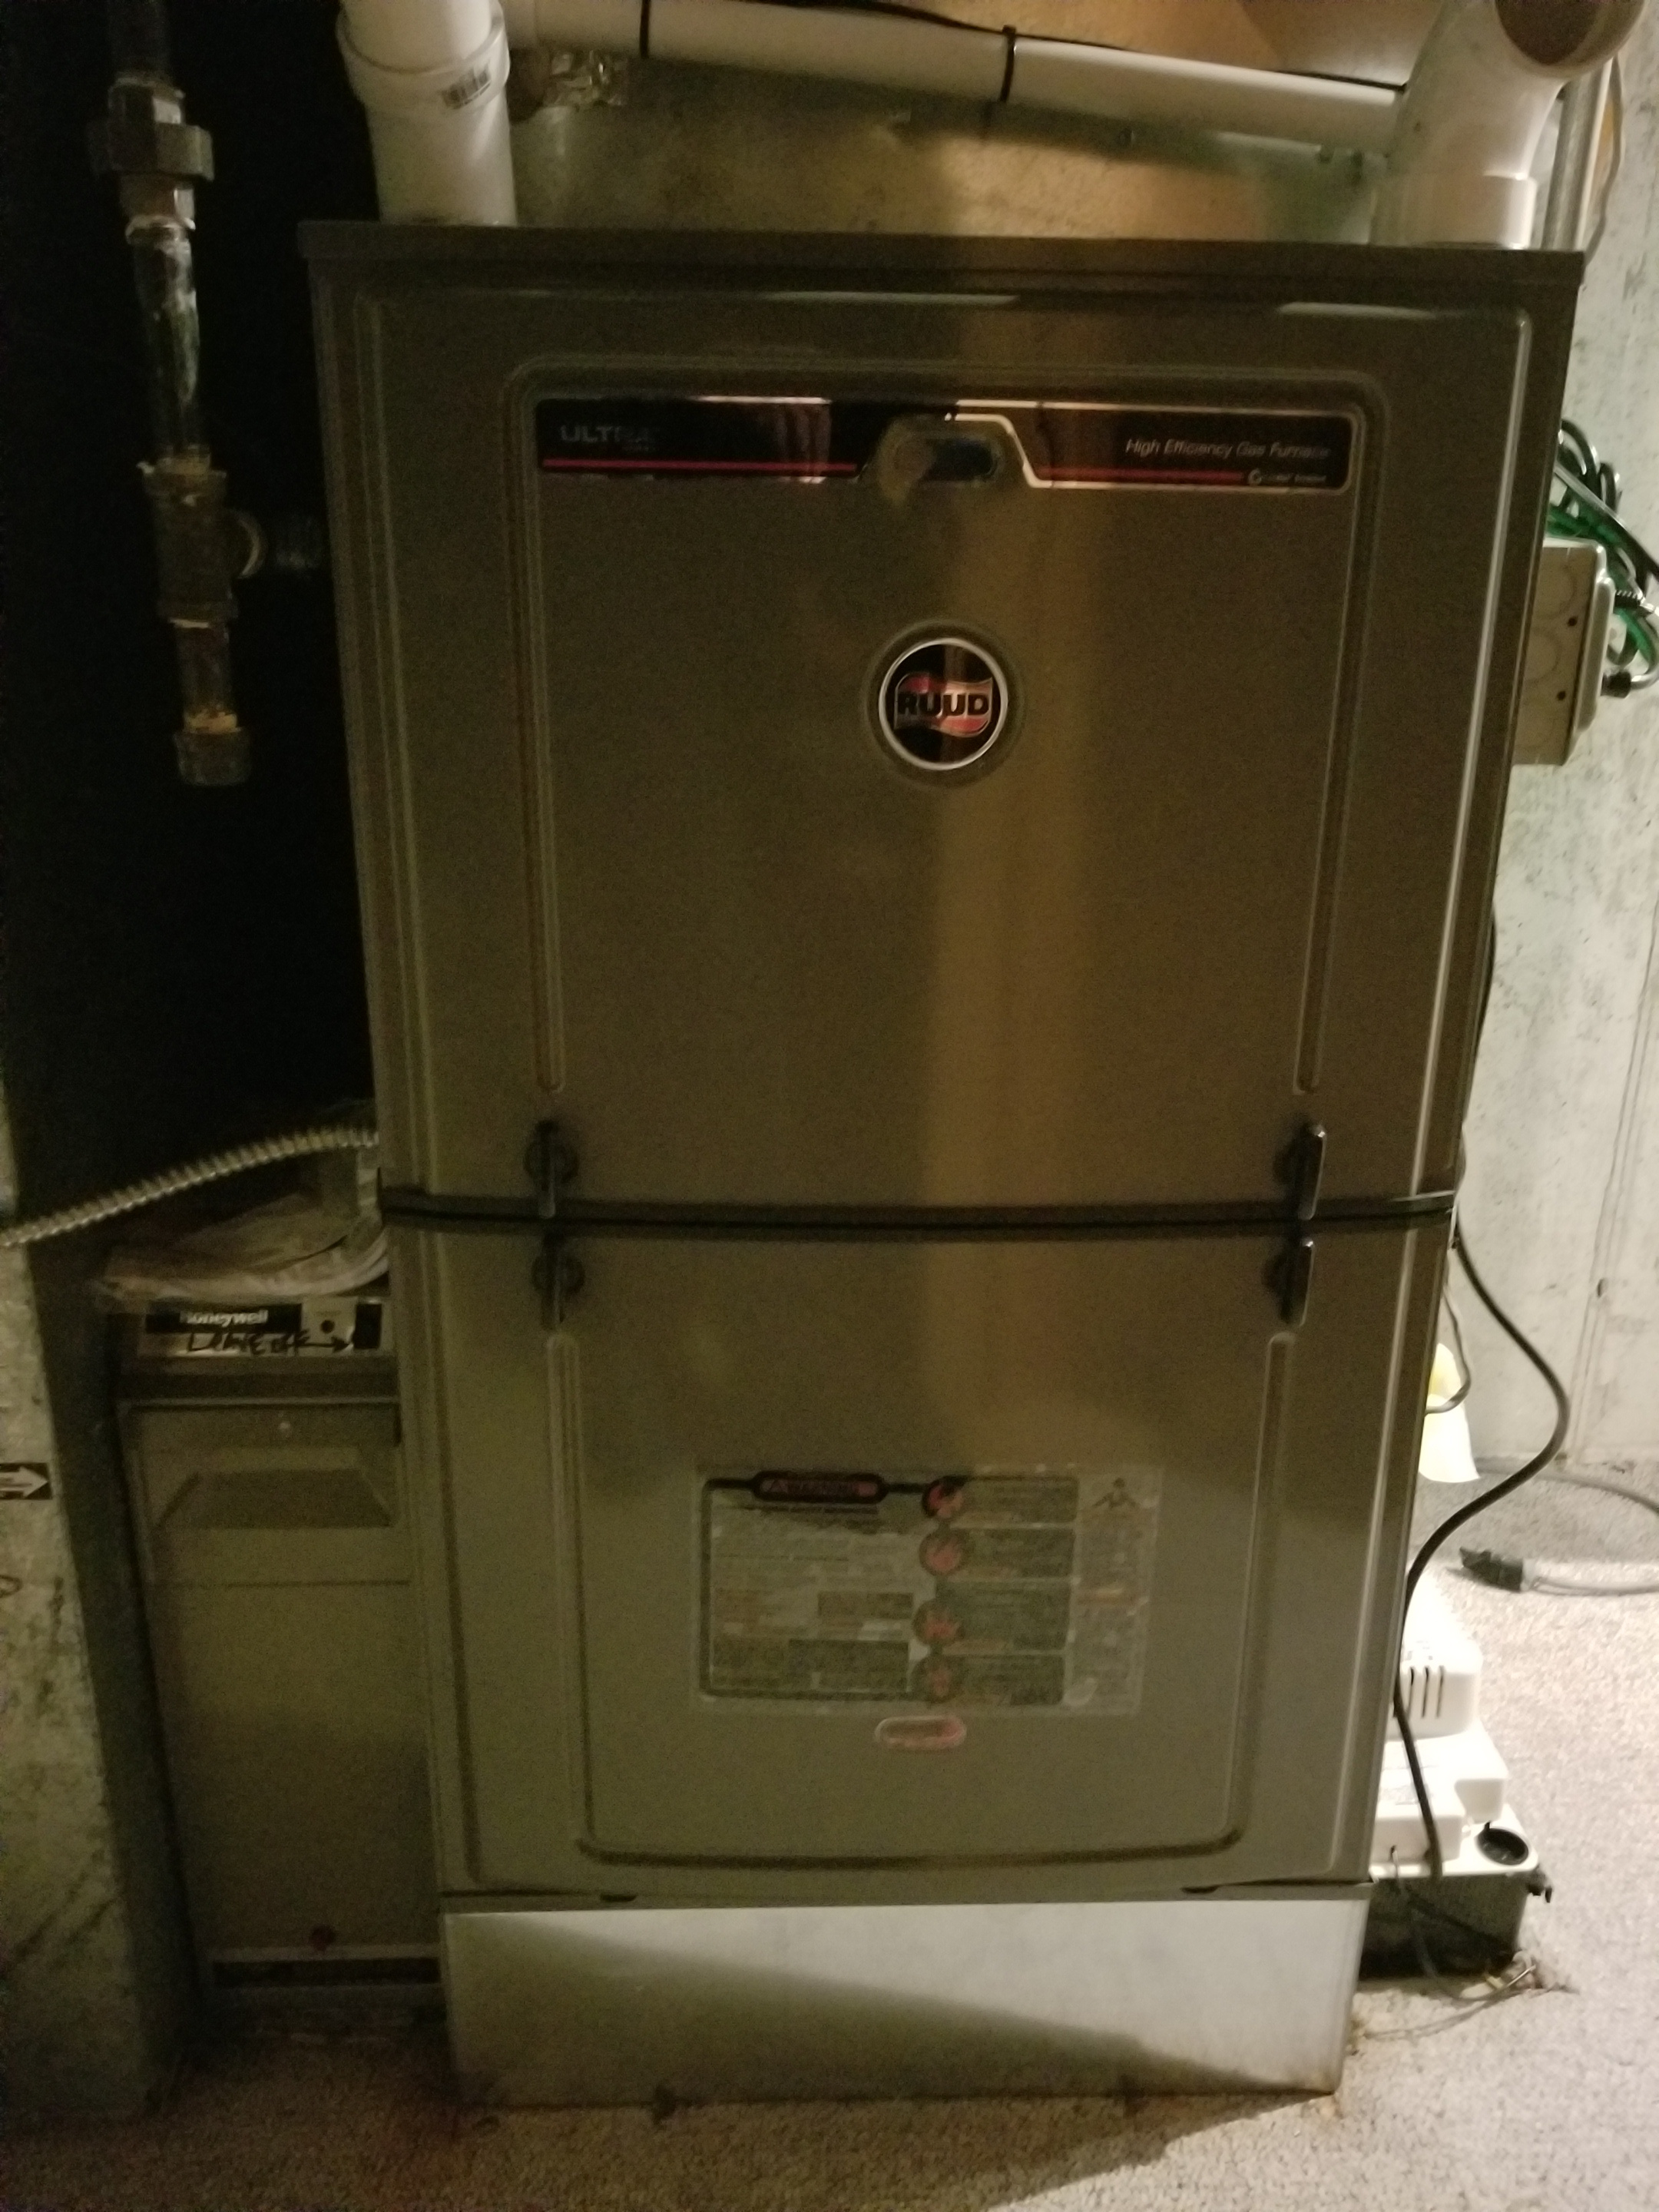 Repaired the Ruud furnace and made adjustments to improve the overall efficiency and life expectancy of the equipment